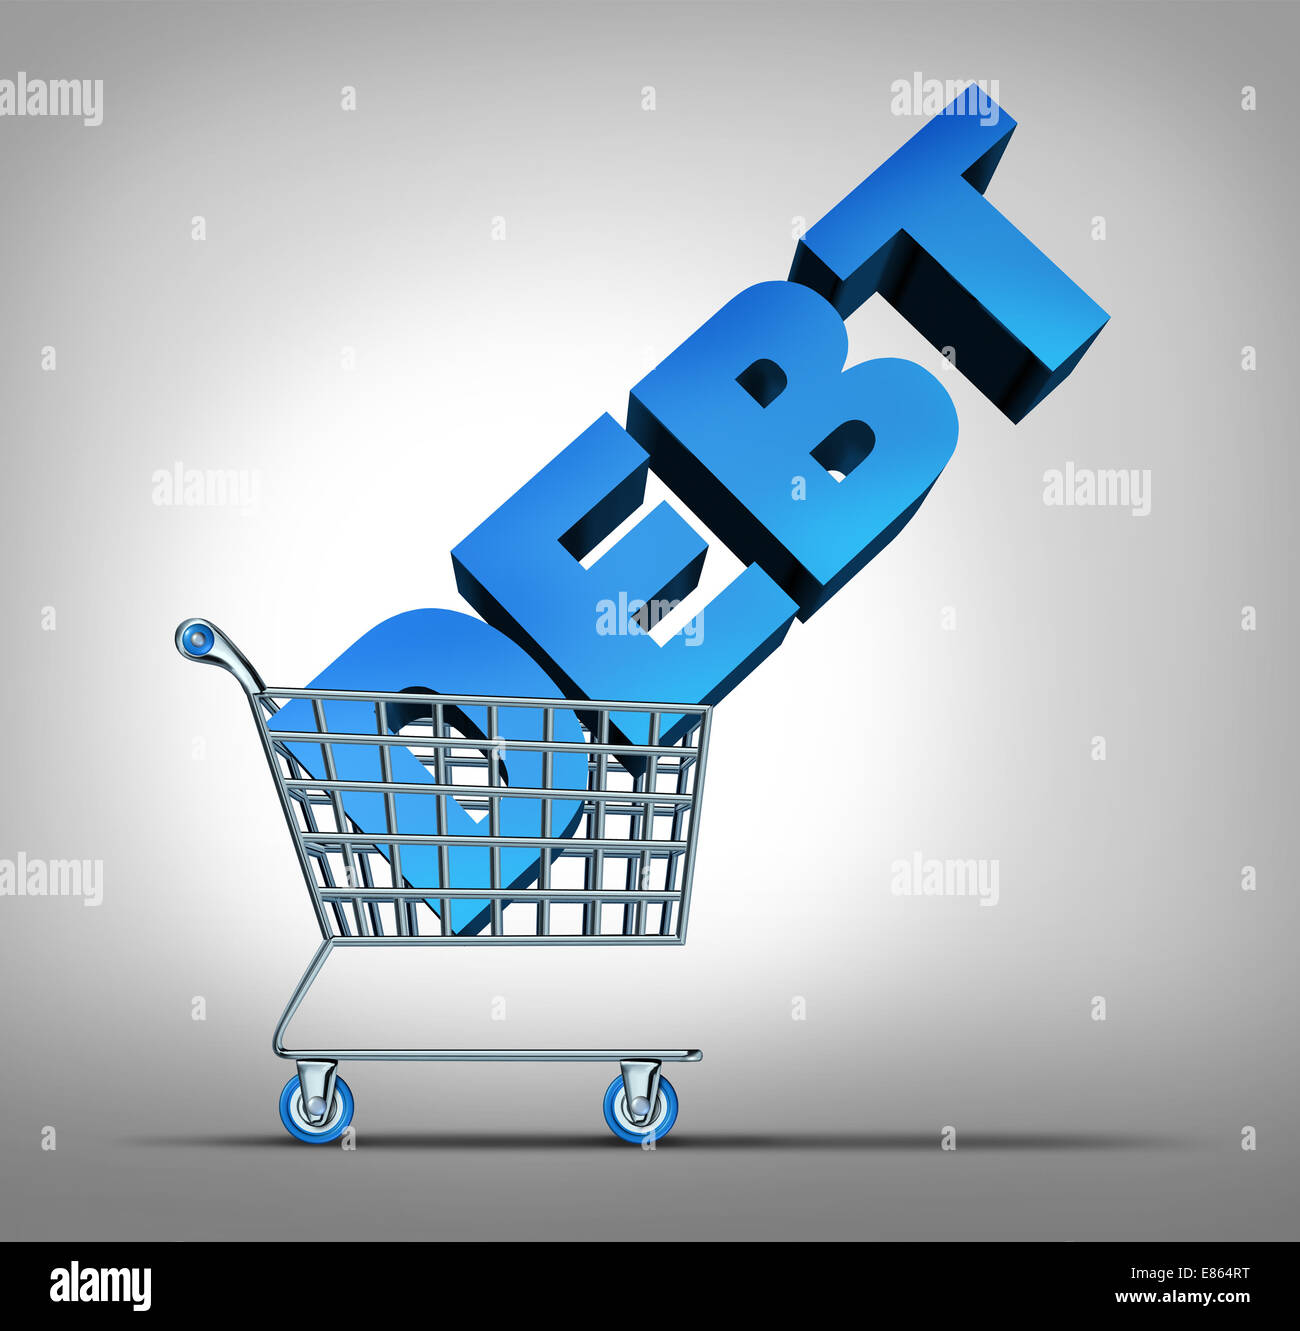 Consumer debt financial concept as a shopping cart dragging a three dimensional text as a credit problem symbol - Stock Image